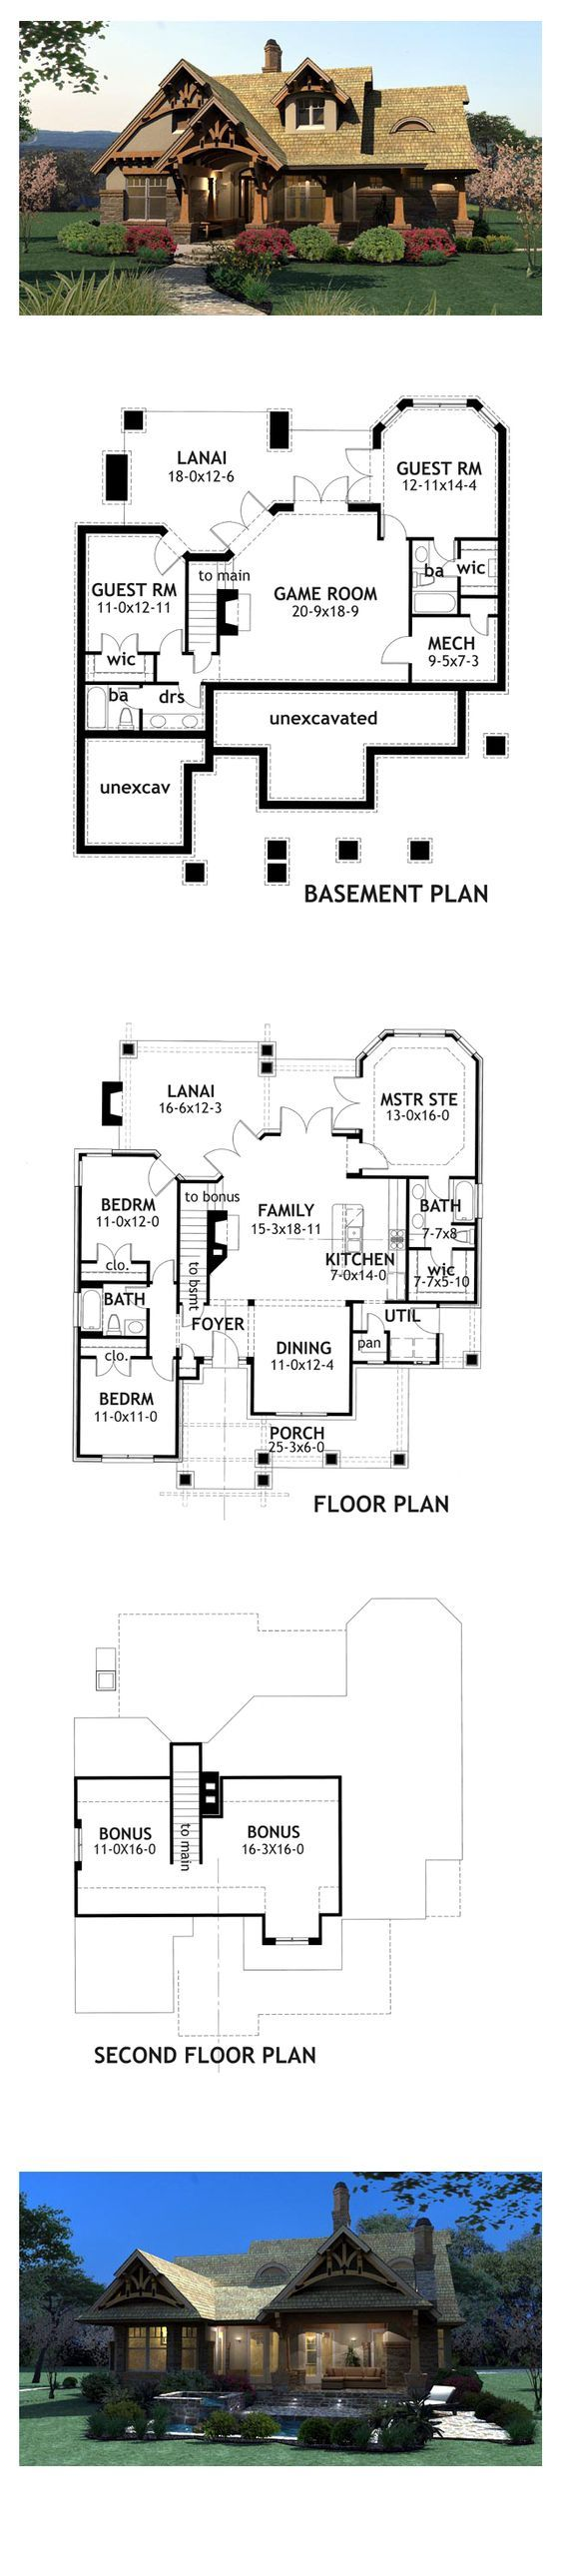 589 best layouts images on pinterest house floor plans sims 589 best layouts images on pinterest house floor plans sims house and architecture